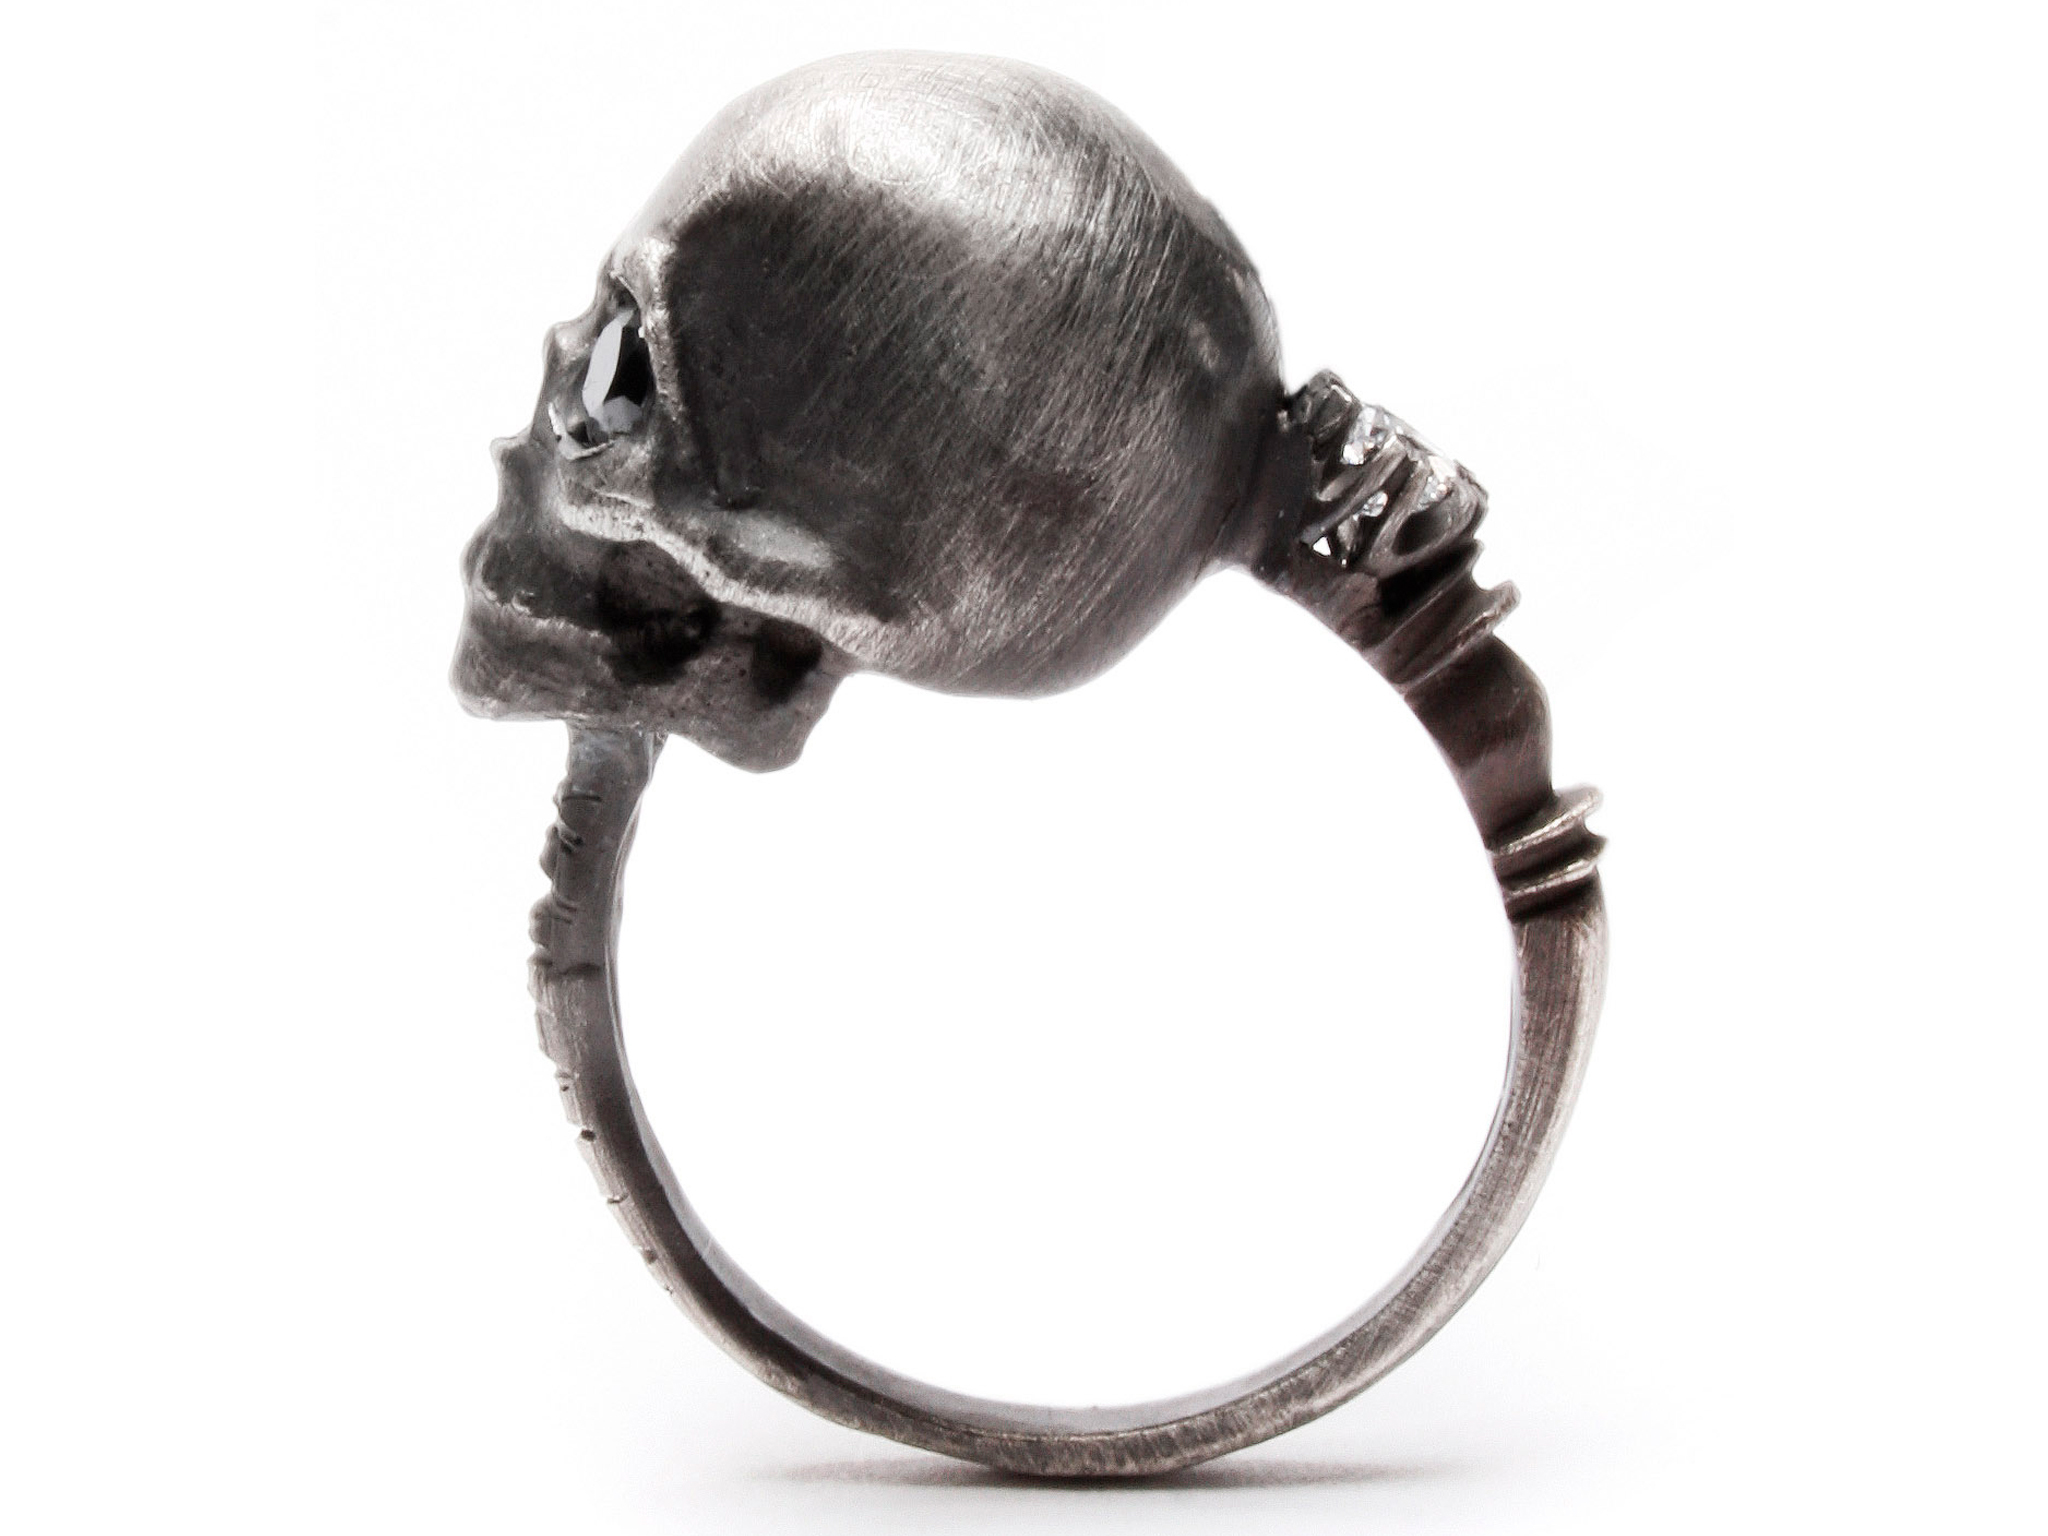 A ring made by Julia DeVille